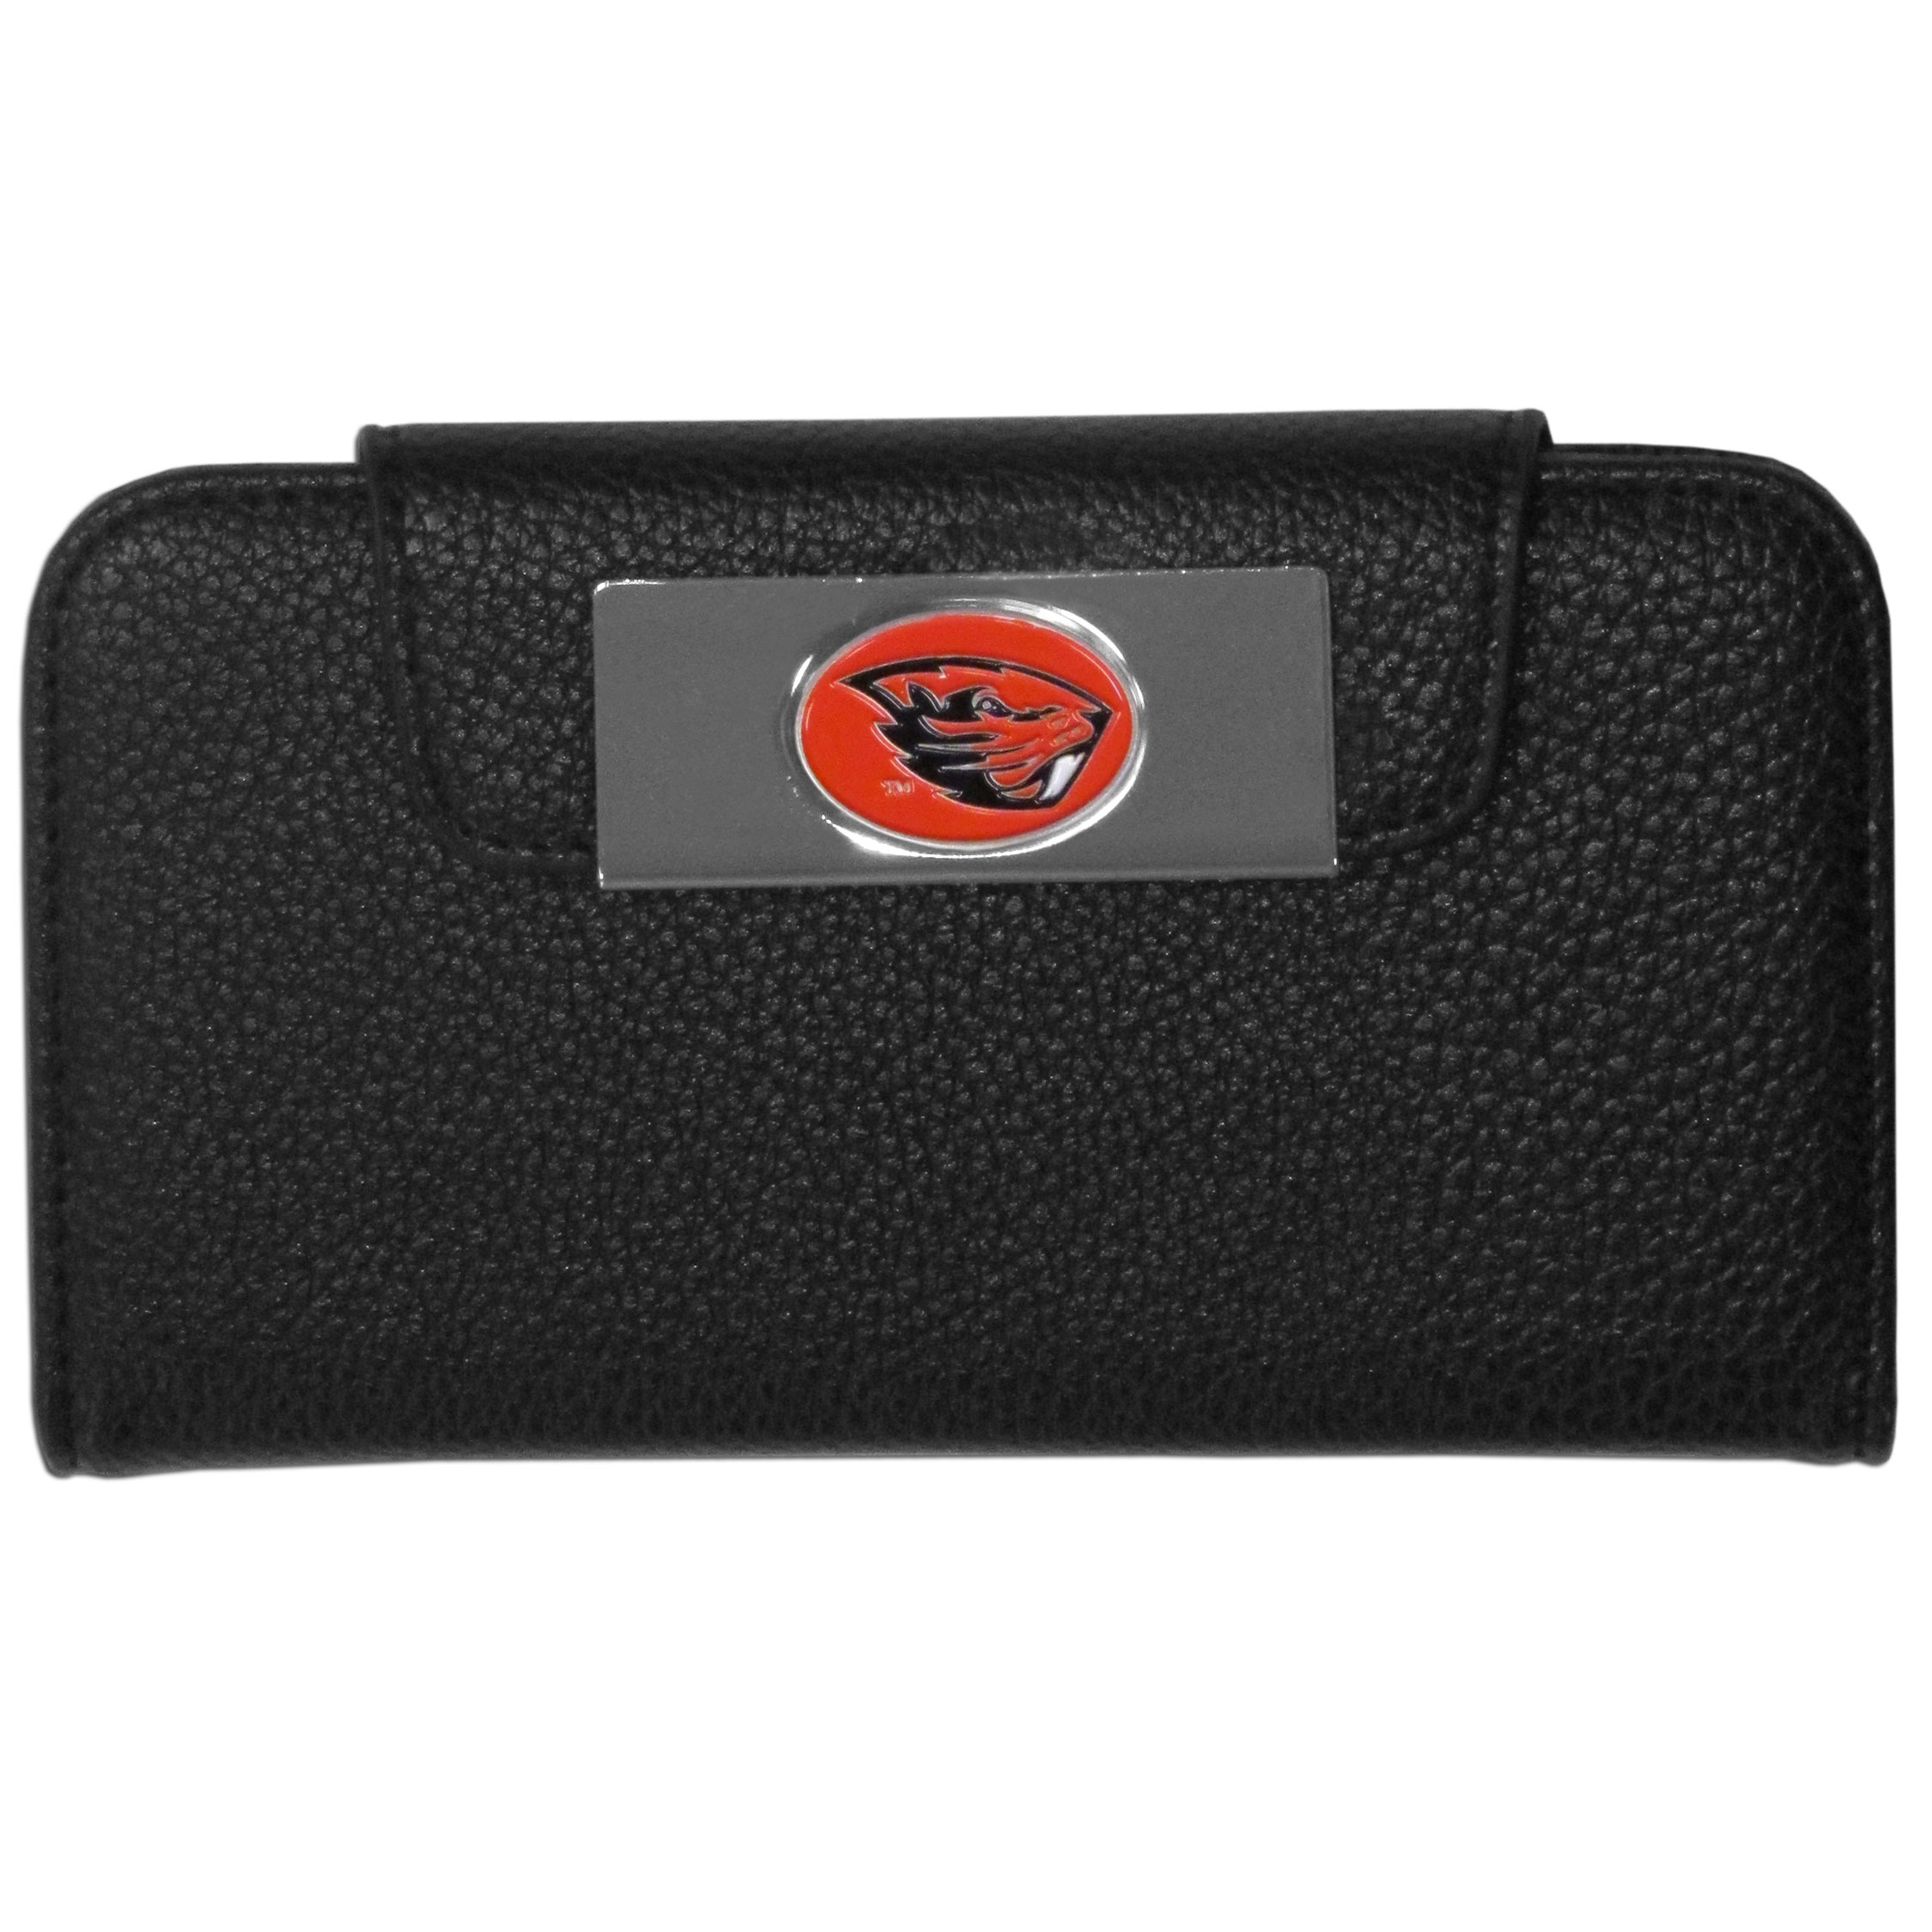 Oregon St. Beavers Samsung Galaxy S4 Wallet Case - This new & wildly popular case is ideal for those who like to travel light! The stylish case has an inner hard shell that securely holds your phone while allowing complete access to the phone's functionality. The flip cover has slots for credit cards, business cards and identification. The magnetic flip cover has a metal Oregon St. Beavers emblem on a high polish chrome backing. Fits the Samsung Galaxy S4